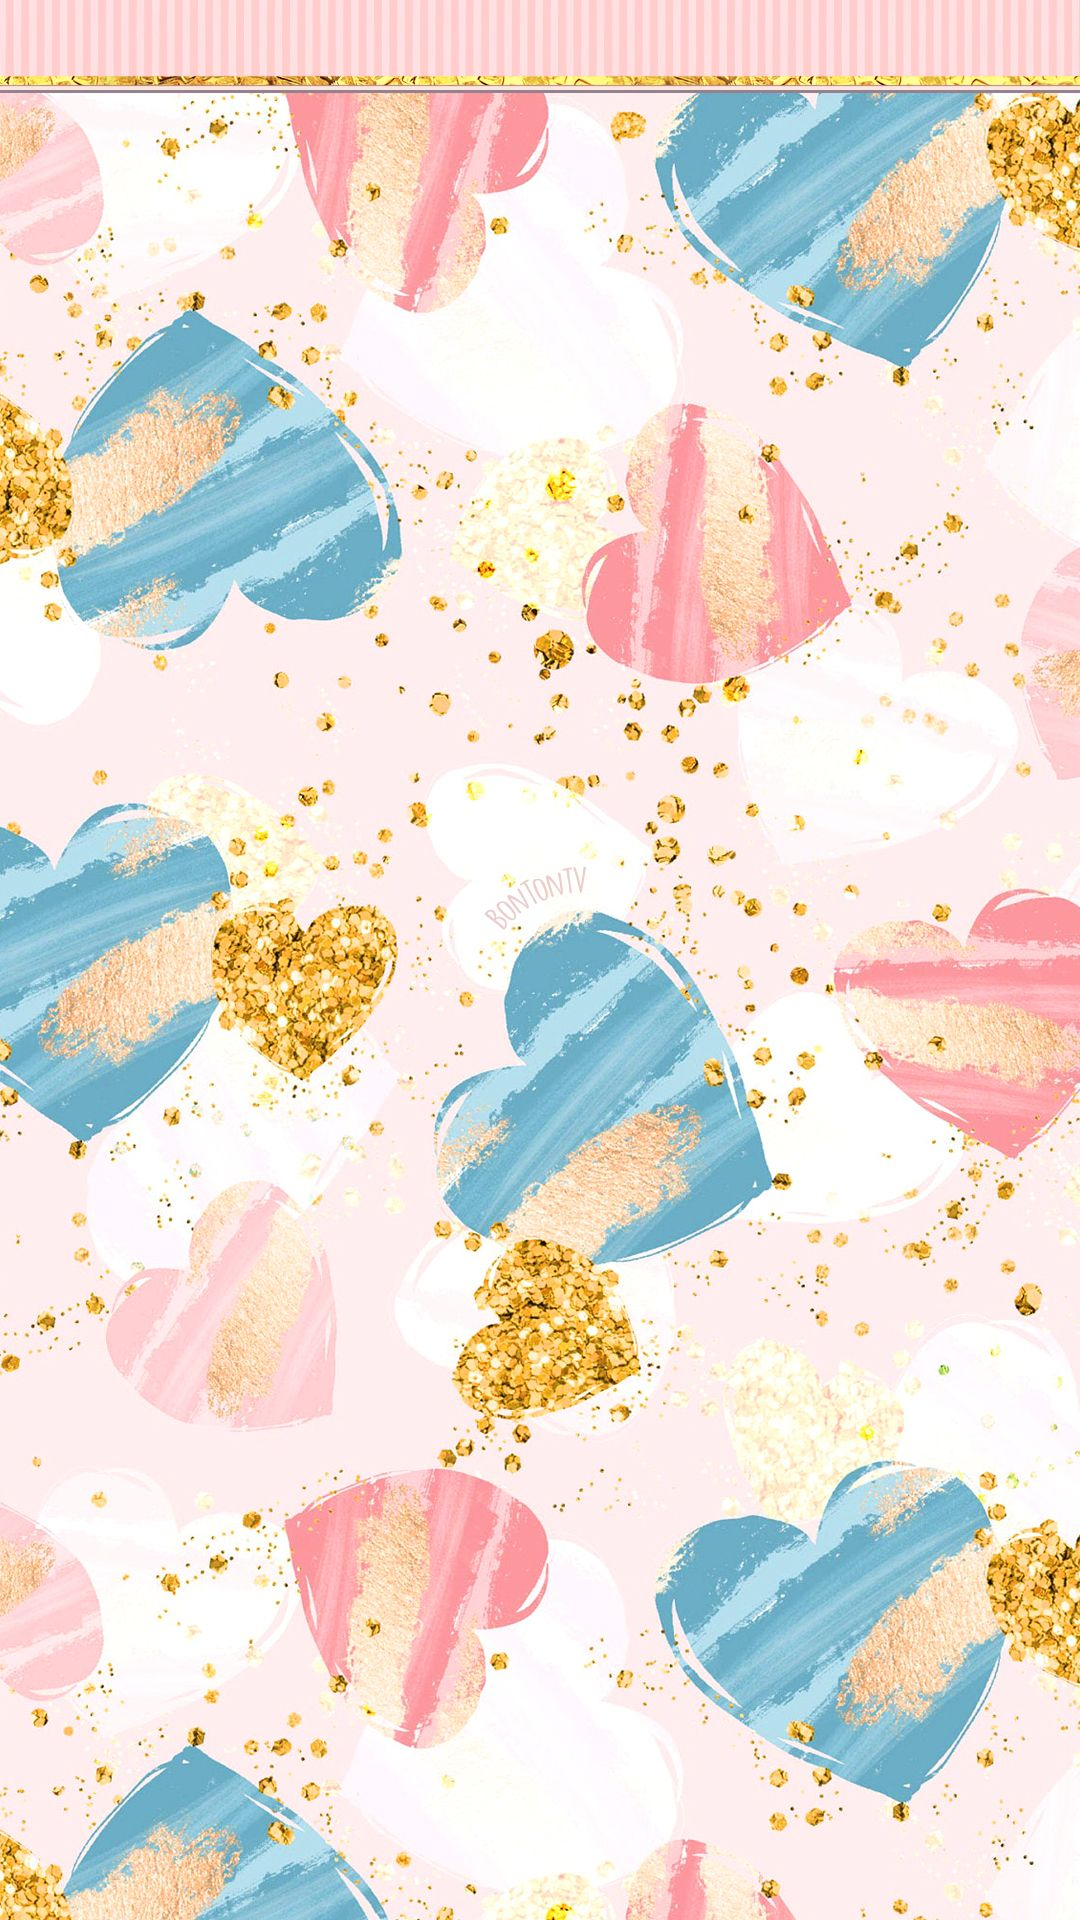 Phone Wallpapers Hd Cute Girly Pink Blue And Gold Hearts By Bonton Tv Free Backgrounds 1 Gold Wallpaper Iphone Blue Wallpaper Phone Wallpaper Pink And Blue